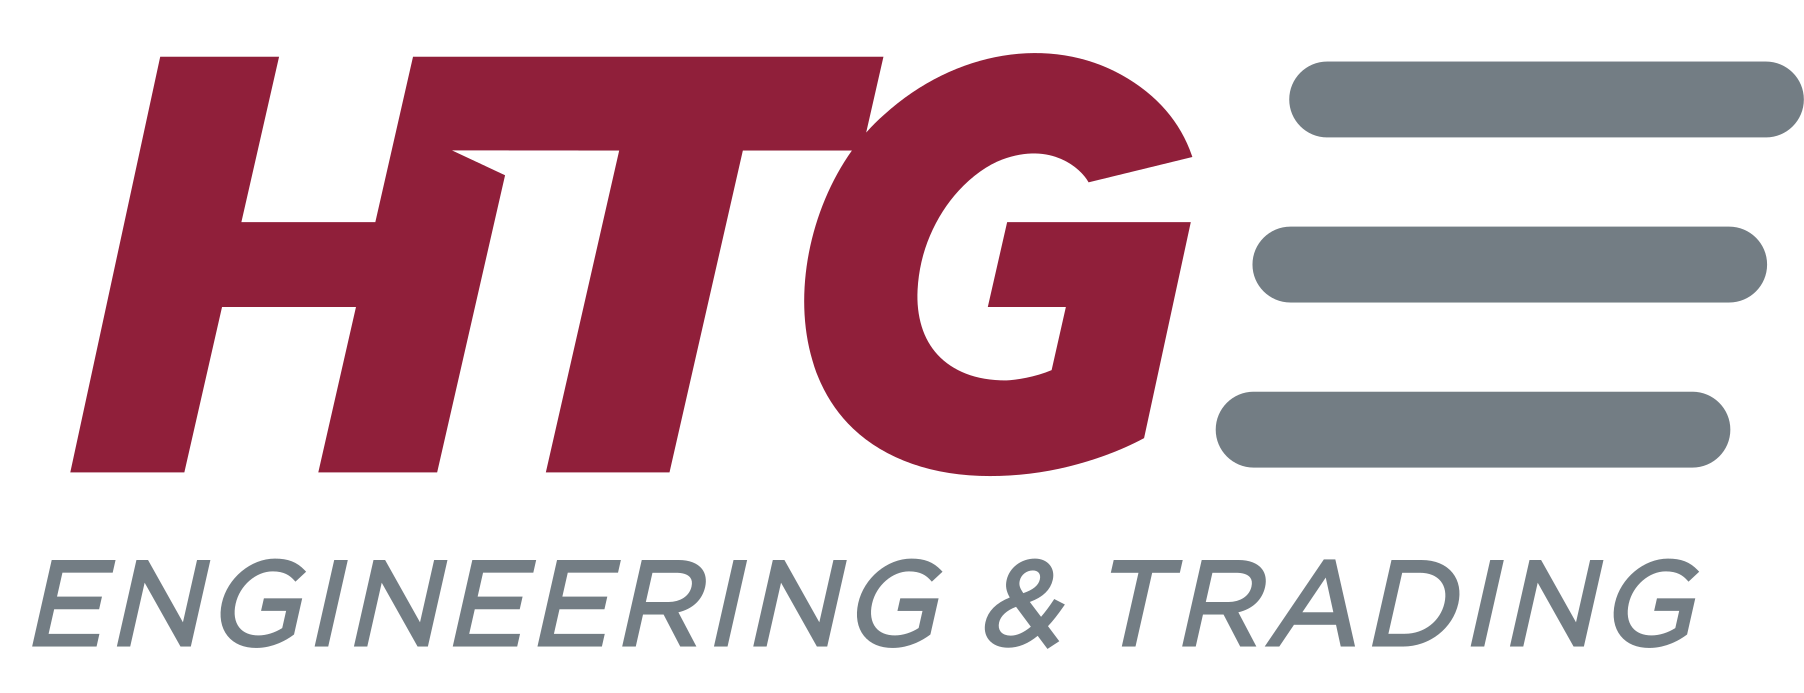 HTG Engineering and Trading